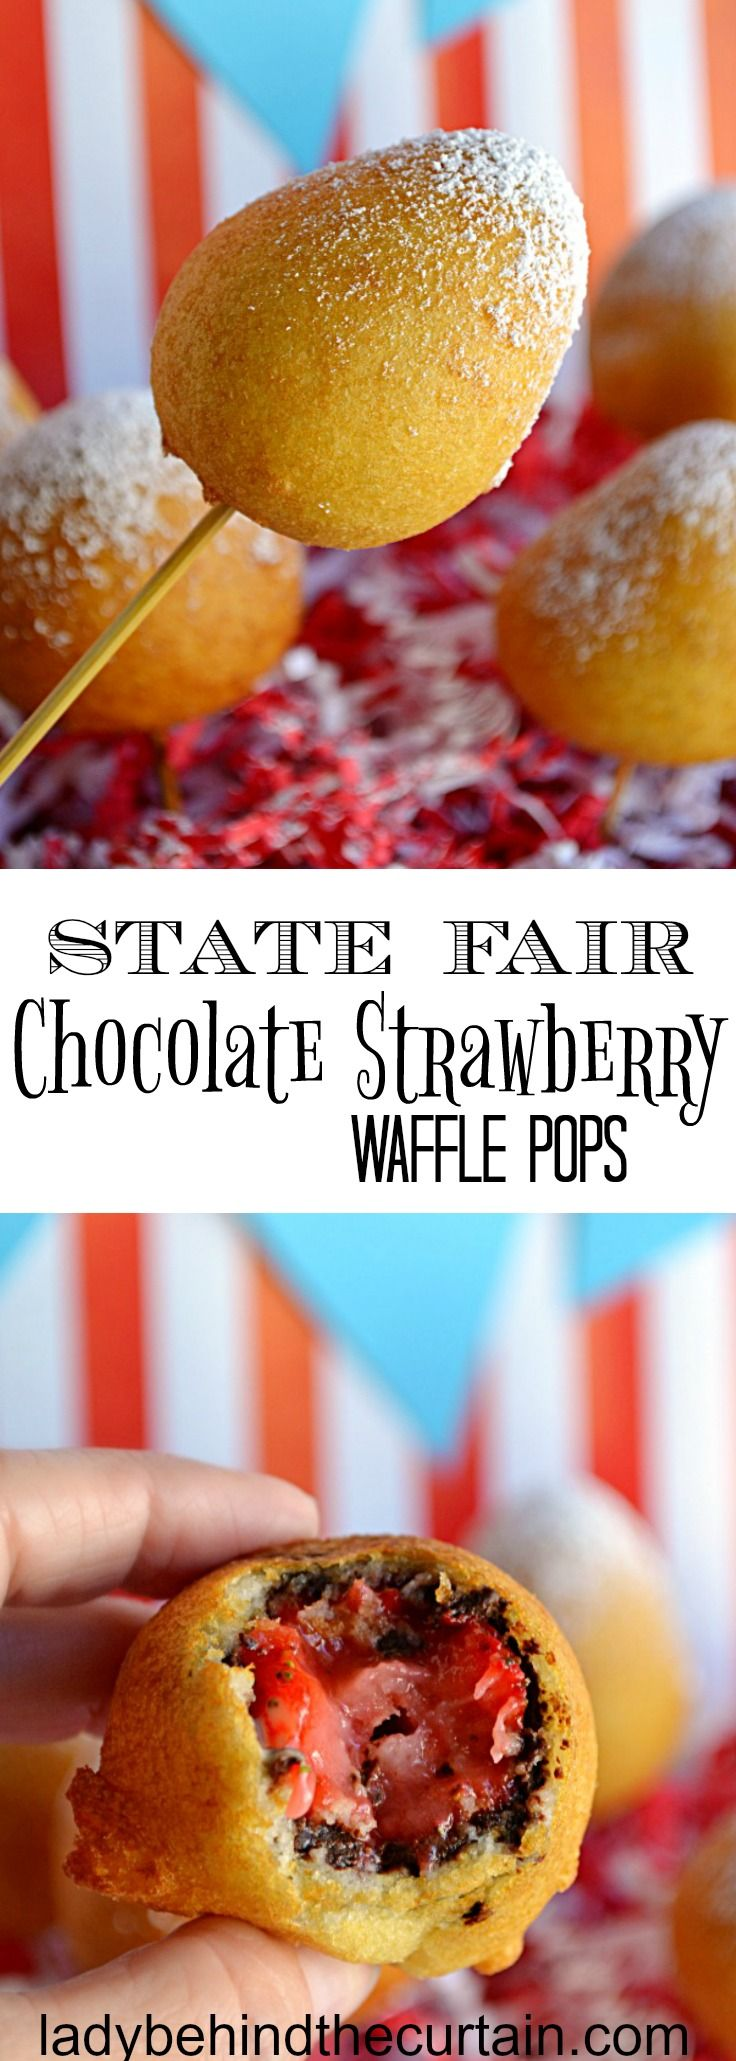 State Fair Chocolate Strawberry Waffle Pops | carnival party, state fair party, circus party, chocolate recipe, strawberry recipe, waffle recipe